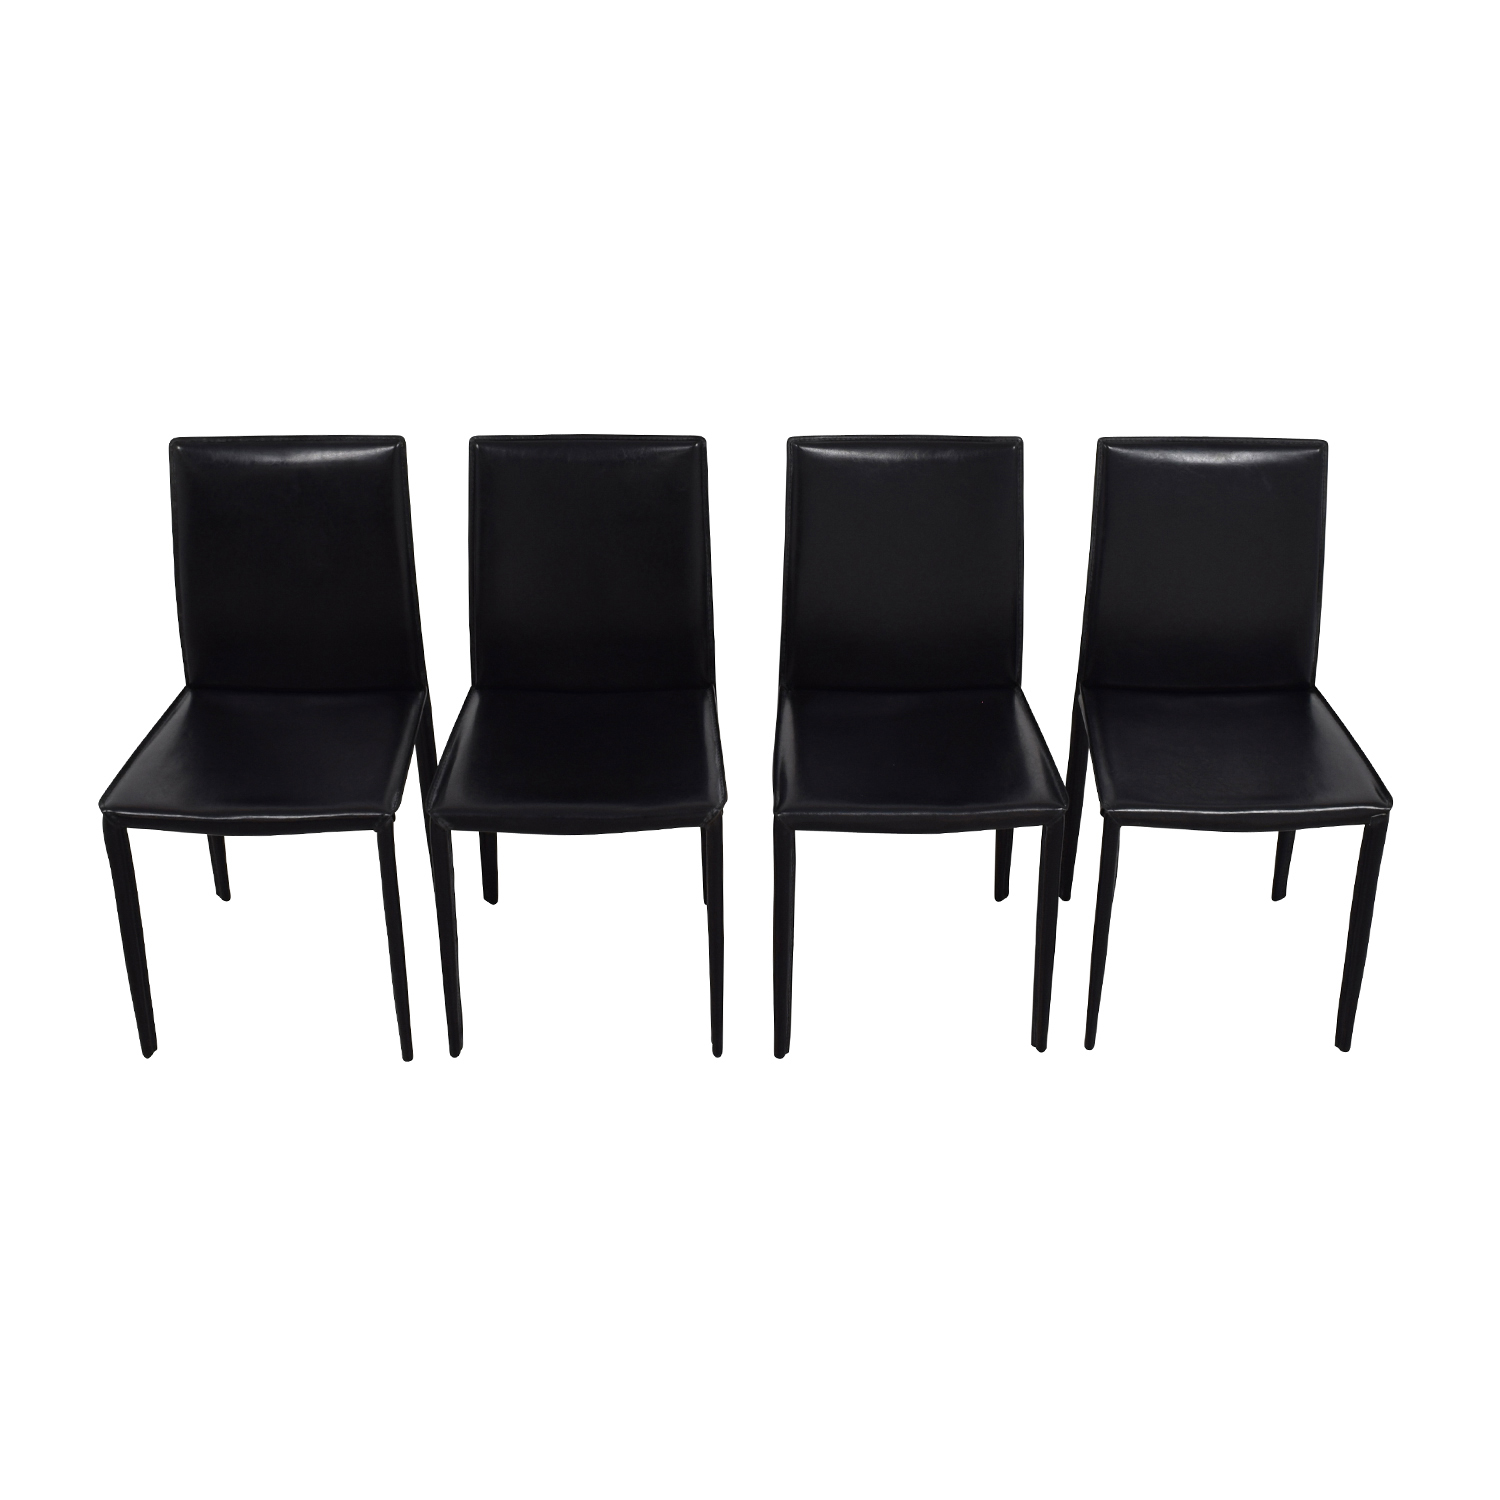 InMod Mia Black Leather Chair / Dining Chairs